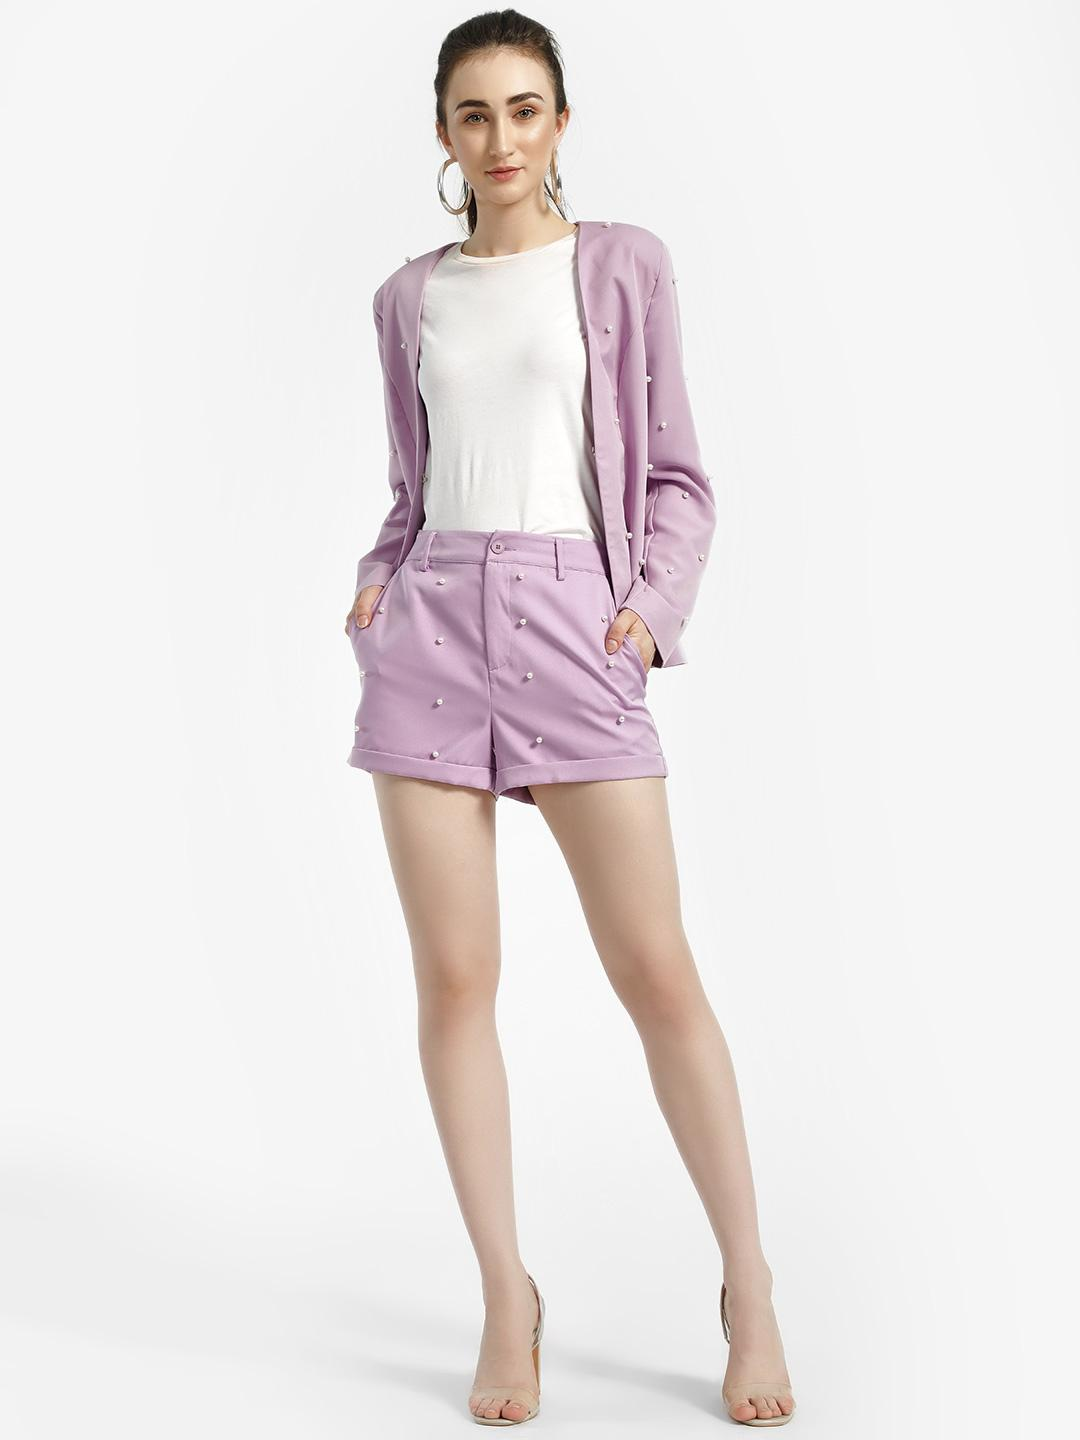 Missi Clothing Purple High Waist Pearl Embellished Shorts 1